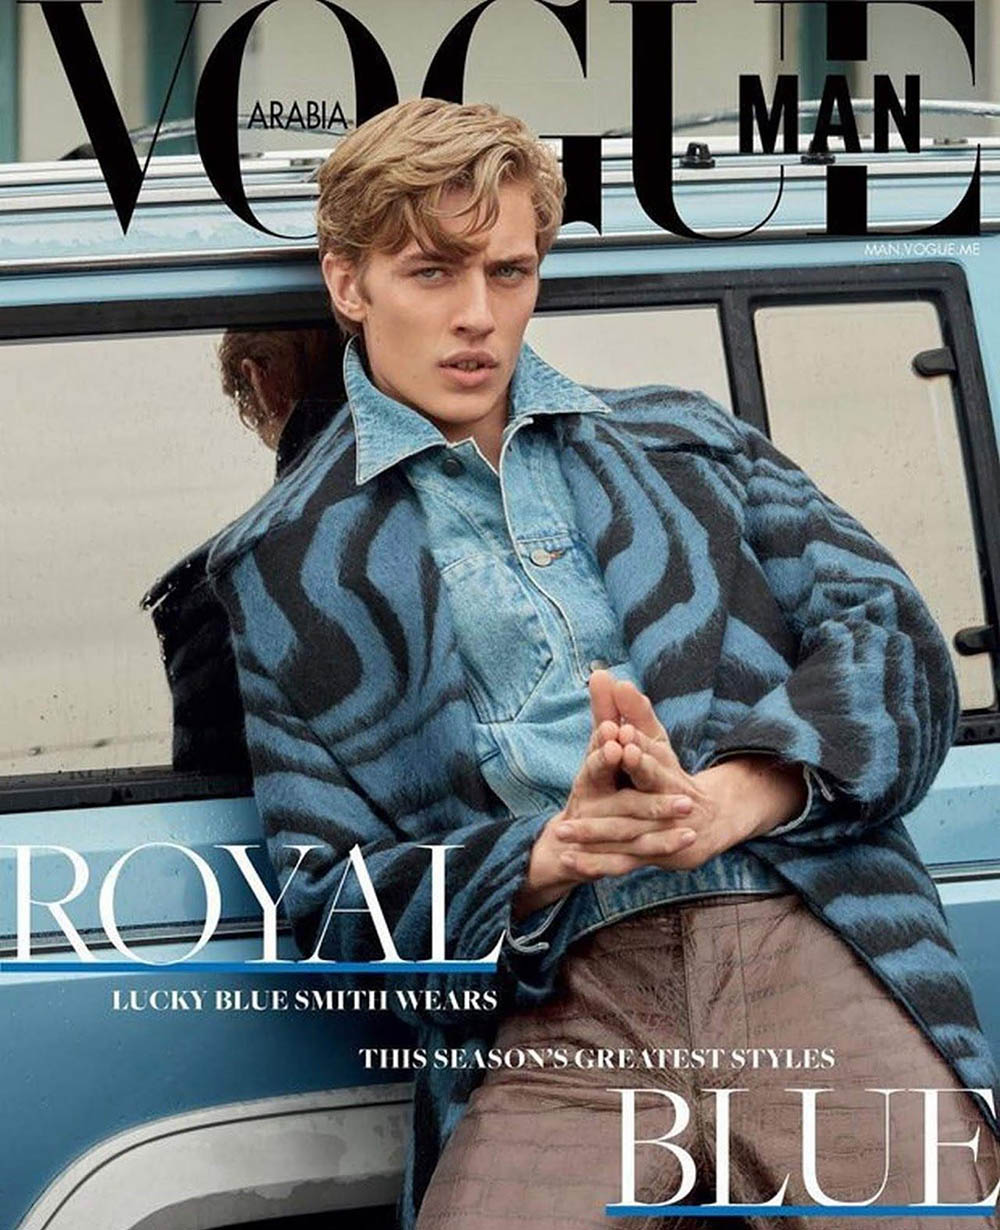 Lucky Blue Smith, digital cover star of Vogue Man Arabia Fall Winter 2018